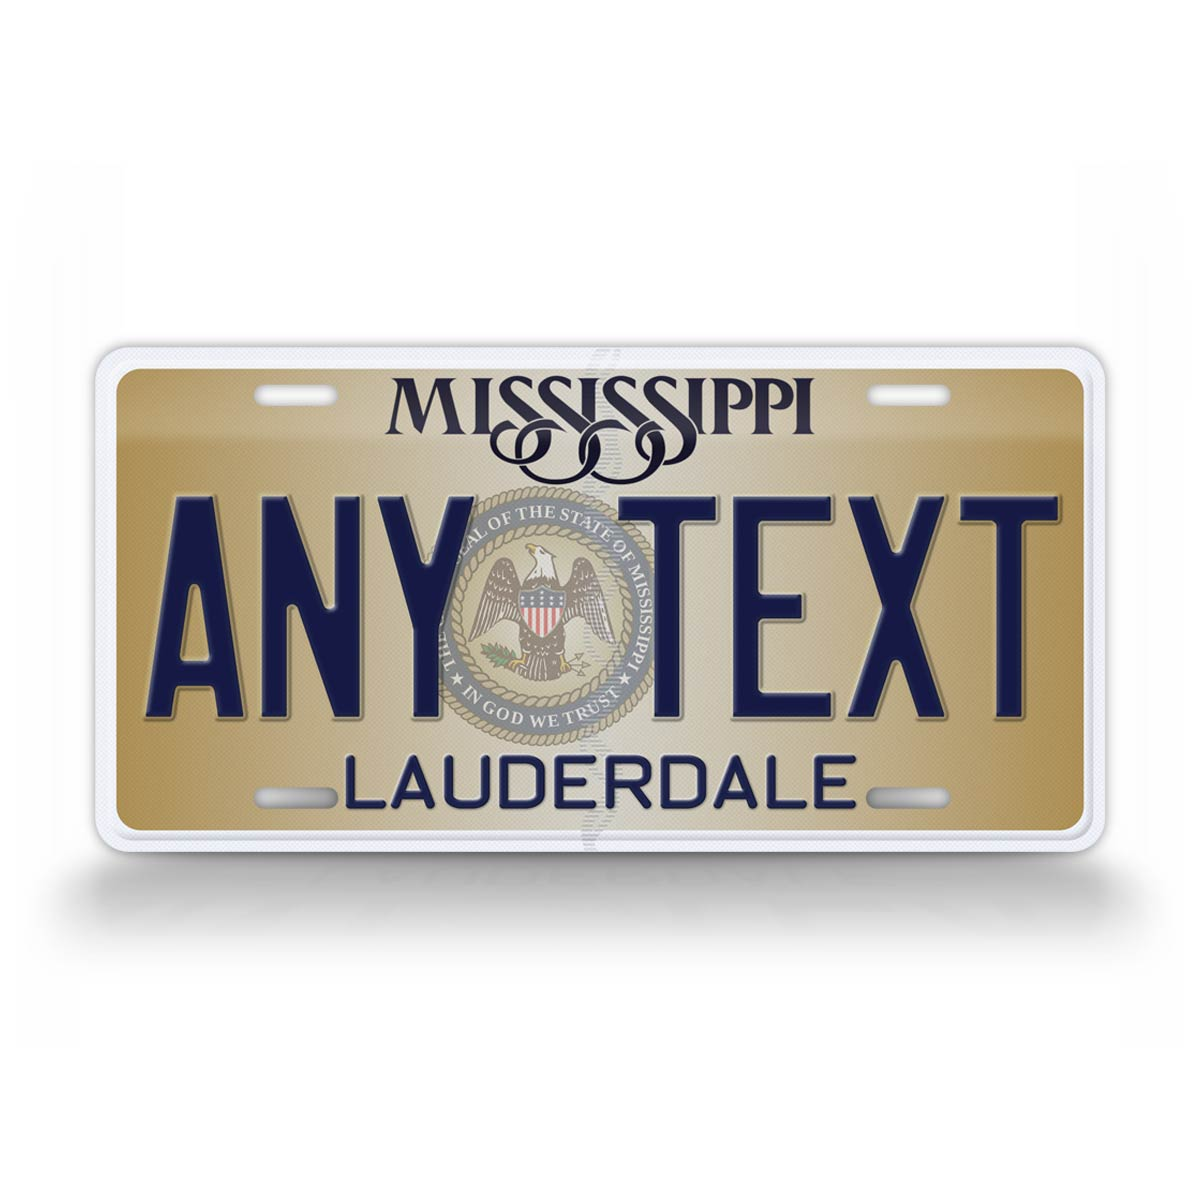 Custom Text Novelty Mississippi State License Plate